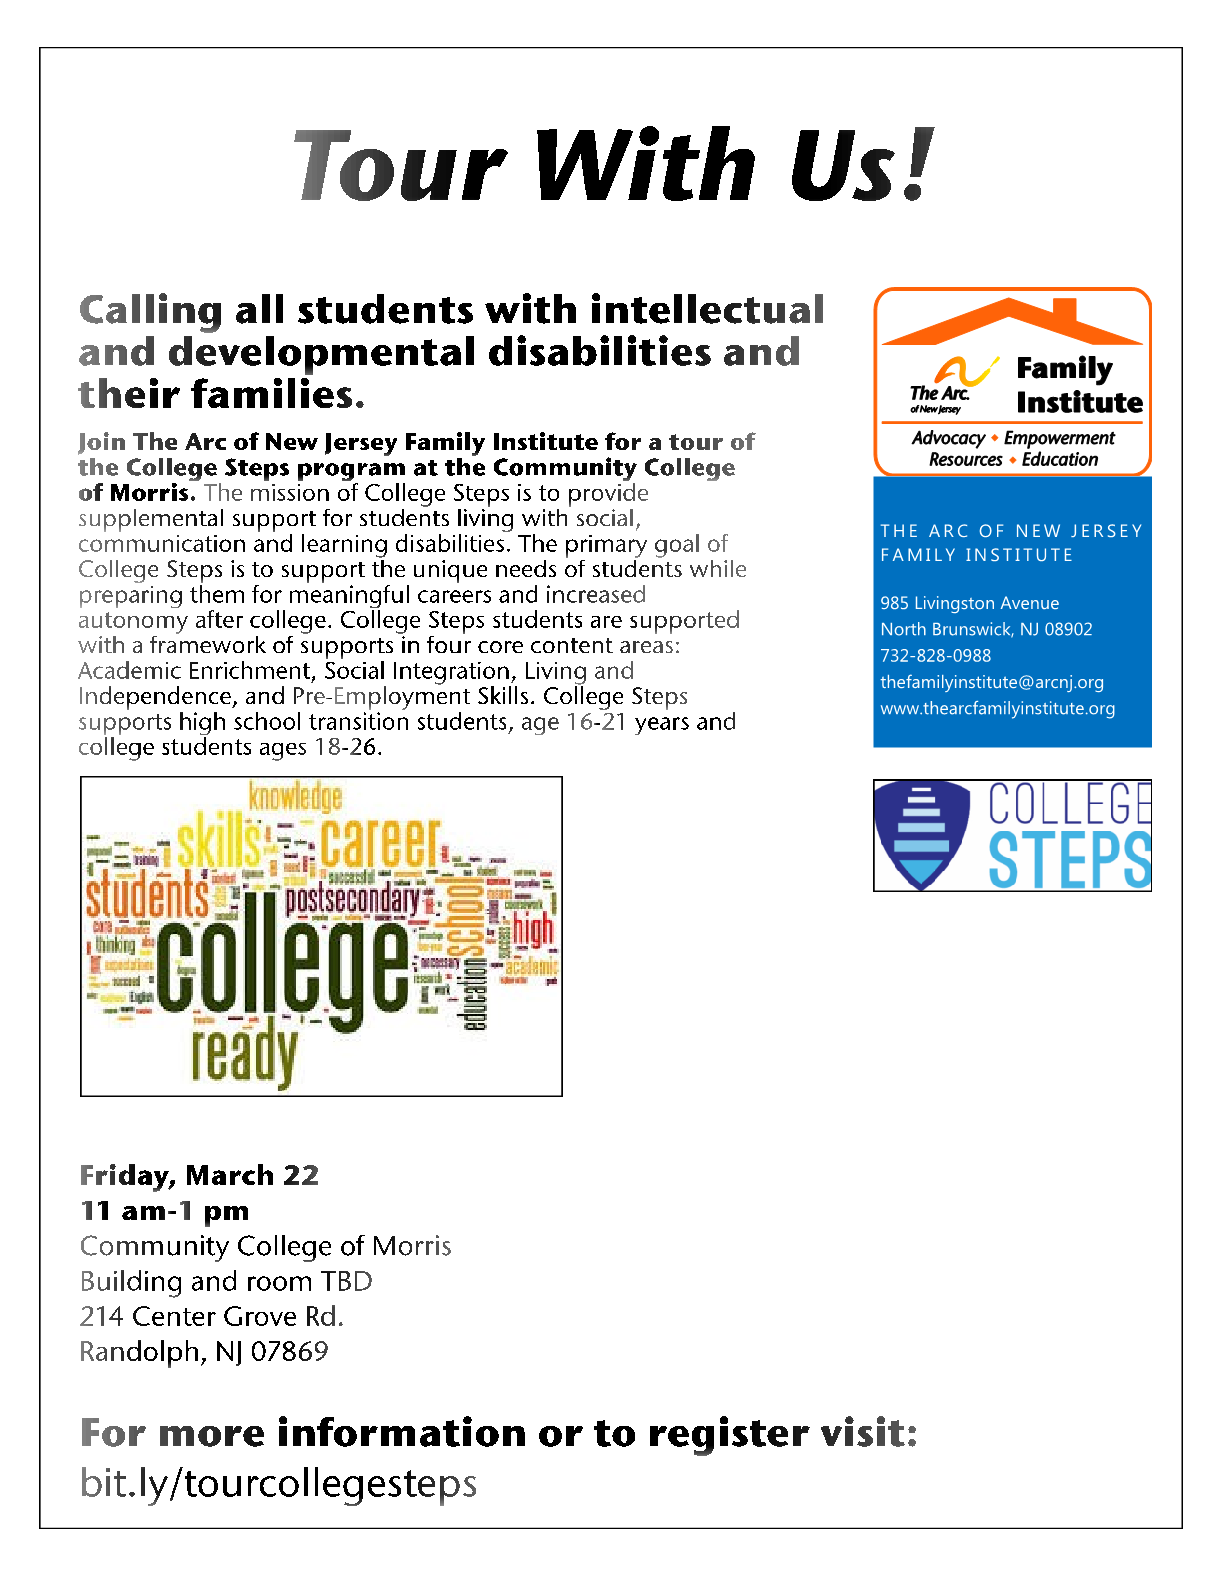 Friday, March 22 - College Steps program at the Community College of Morris